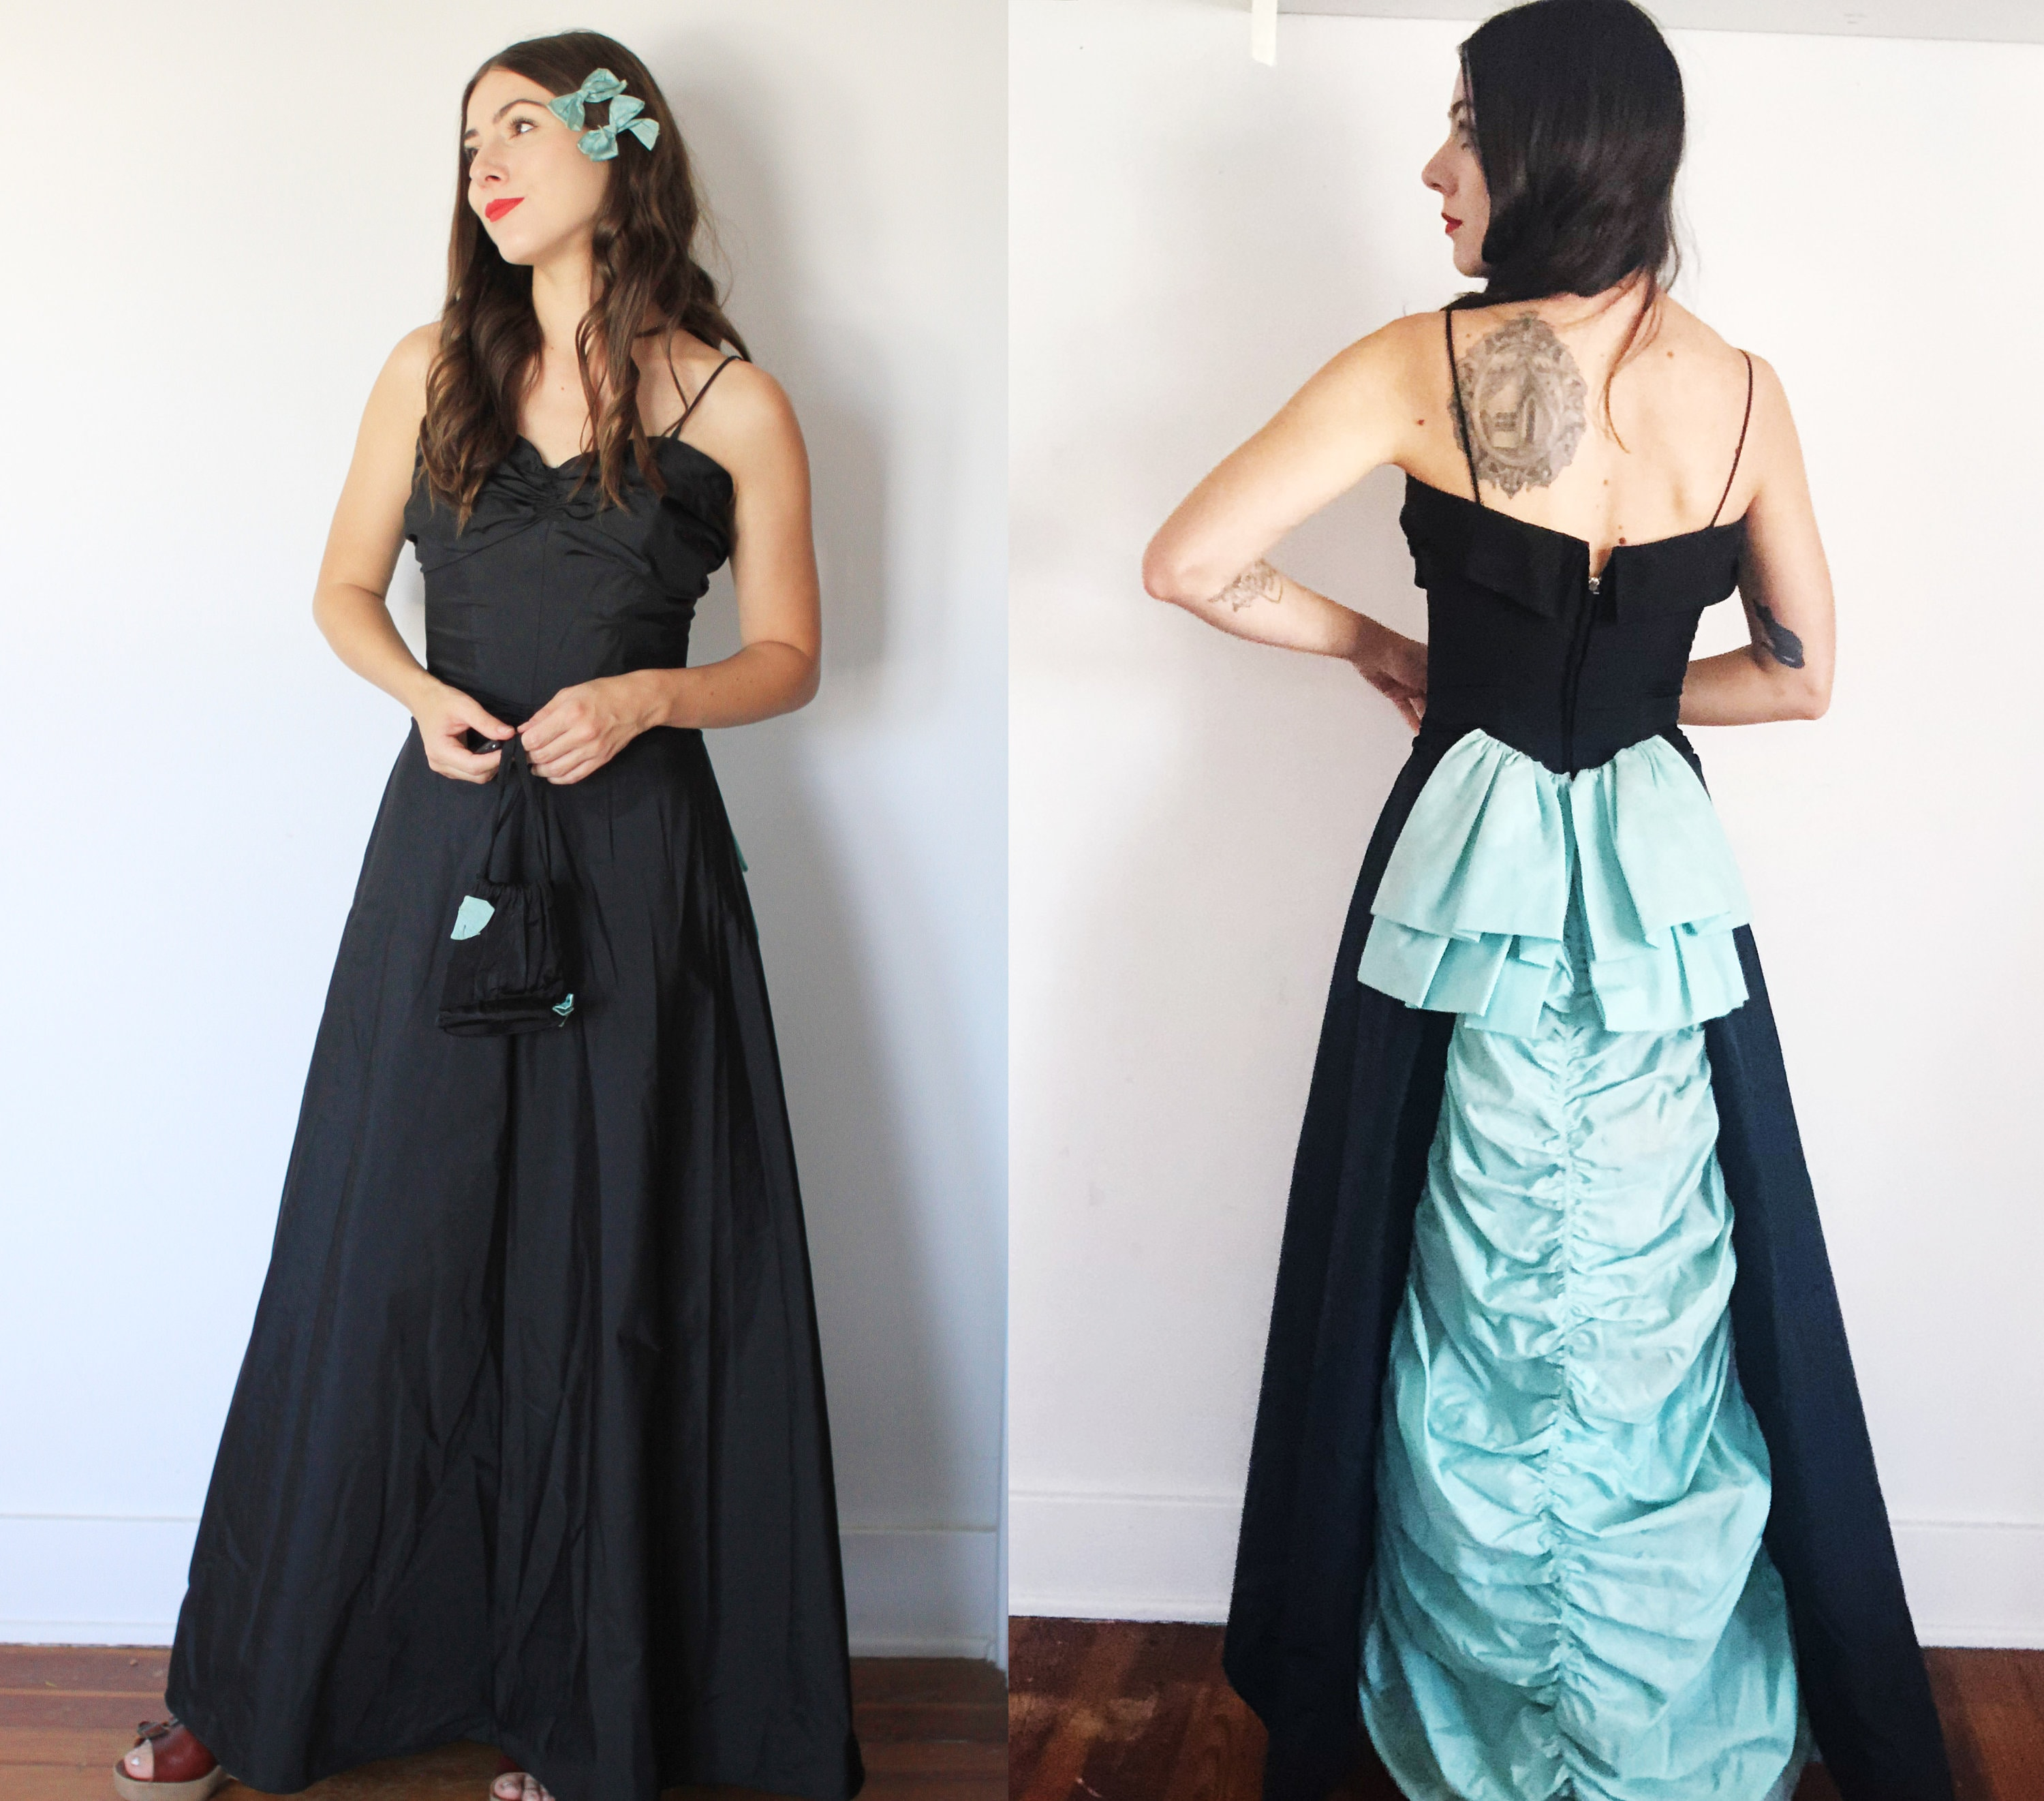 1940s Handbags and Purses History Vintage Late 1940S Early 1950S Xs Fred Perlberg Dance Originals Formal GownMaxi Dress - Sleeveless Spaghetti Strap Sweetheart Neckline $18.00 AT vintagedancer.com